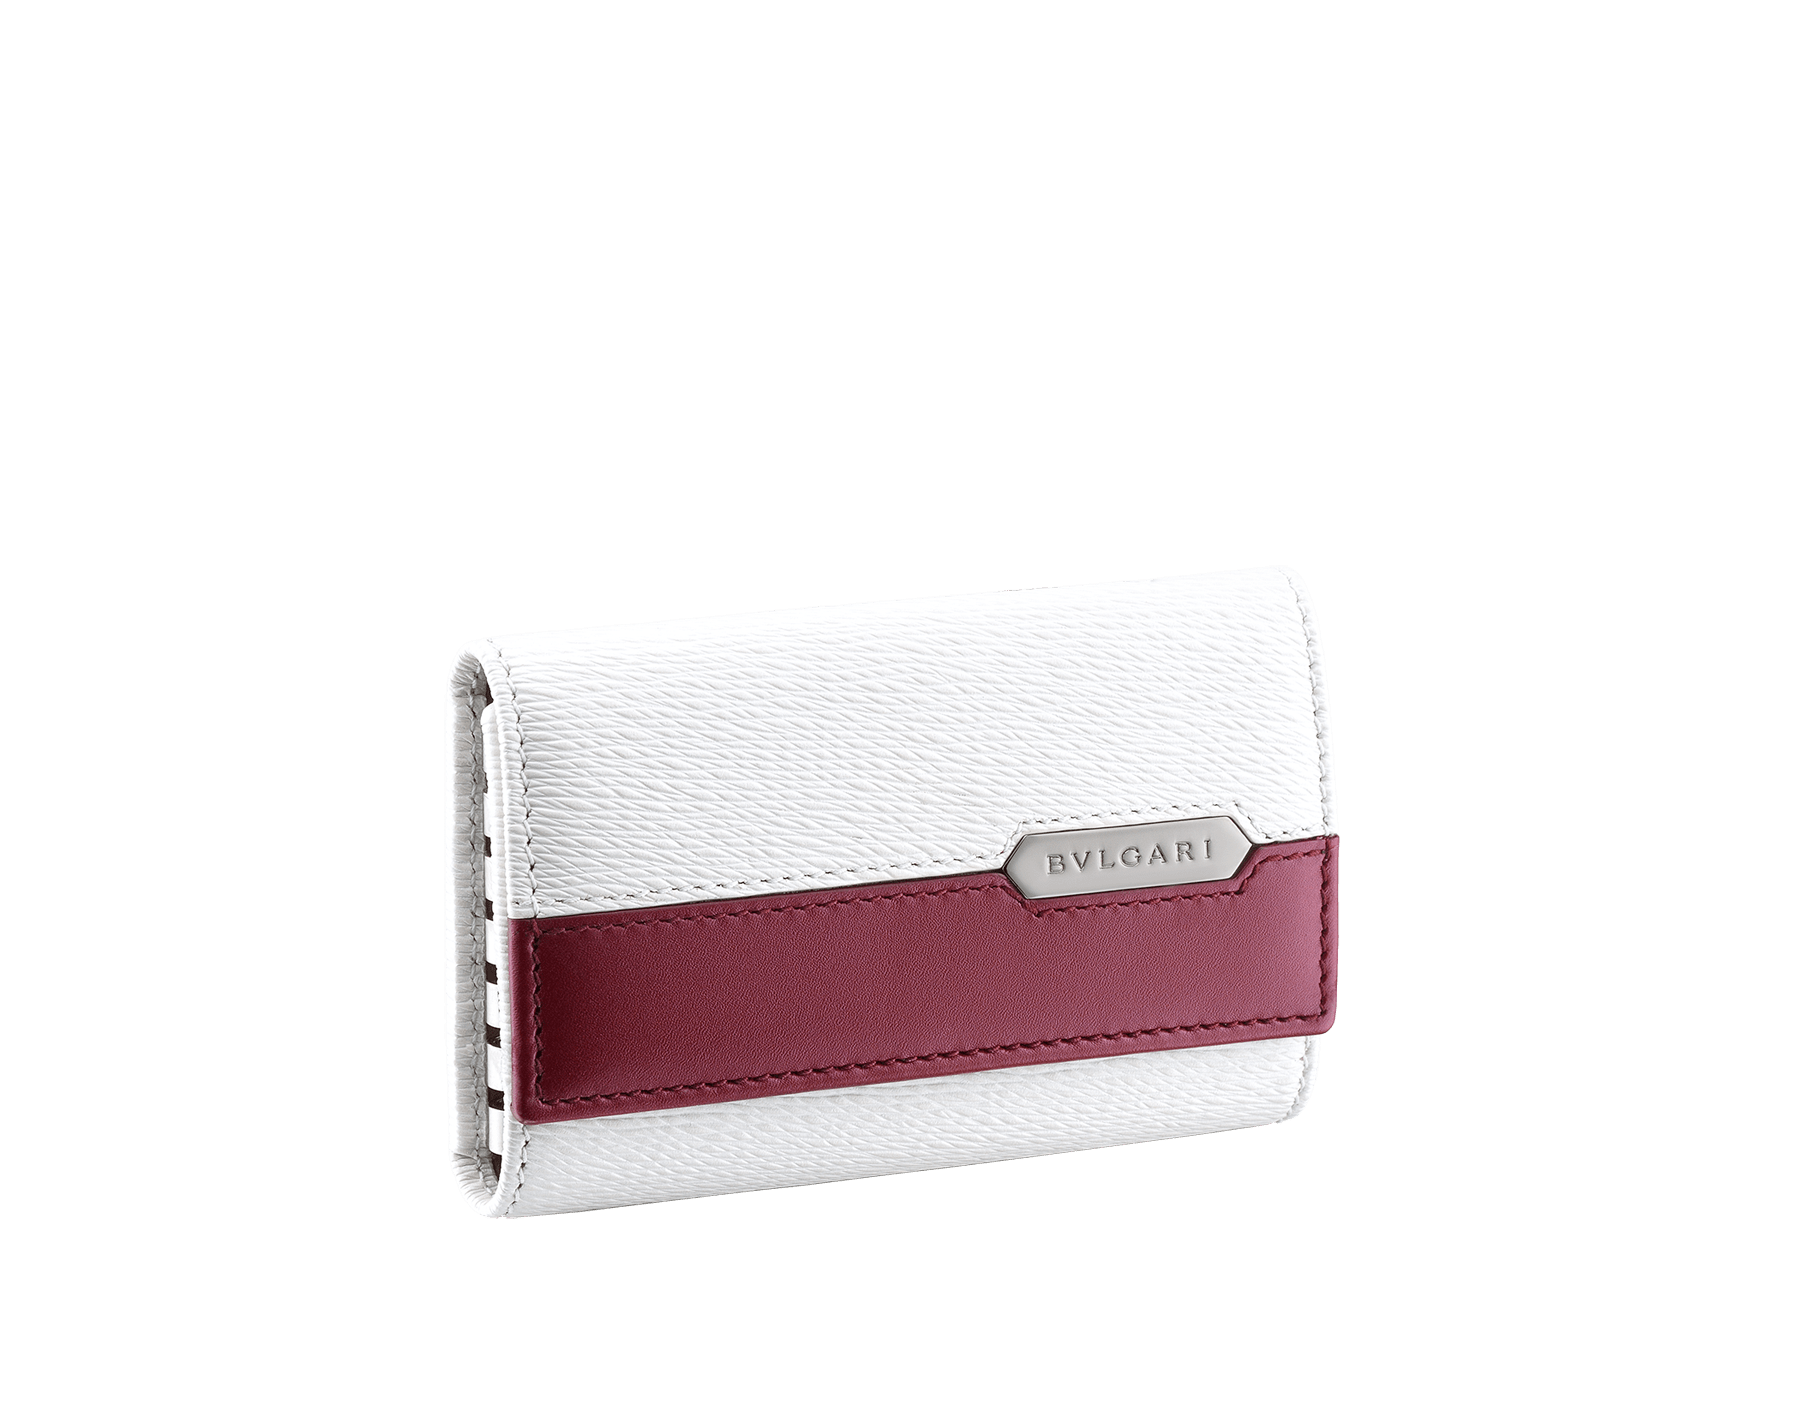 Serpenti Scaglie men's key holder in white agate grazed calf leather and roman garnet calf leather. Bvlgari logo engraved on the hexagonal scaglie metal plate finished in dark ruthenium. 288461 image 1